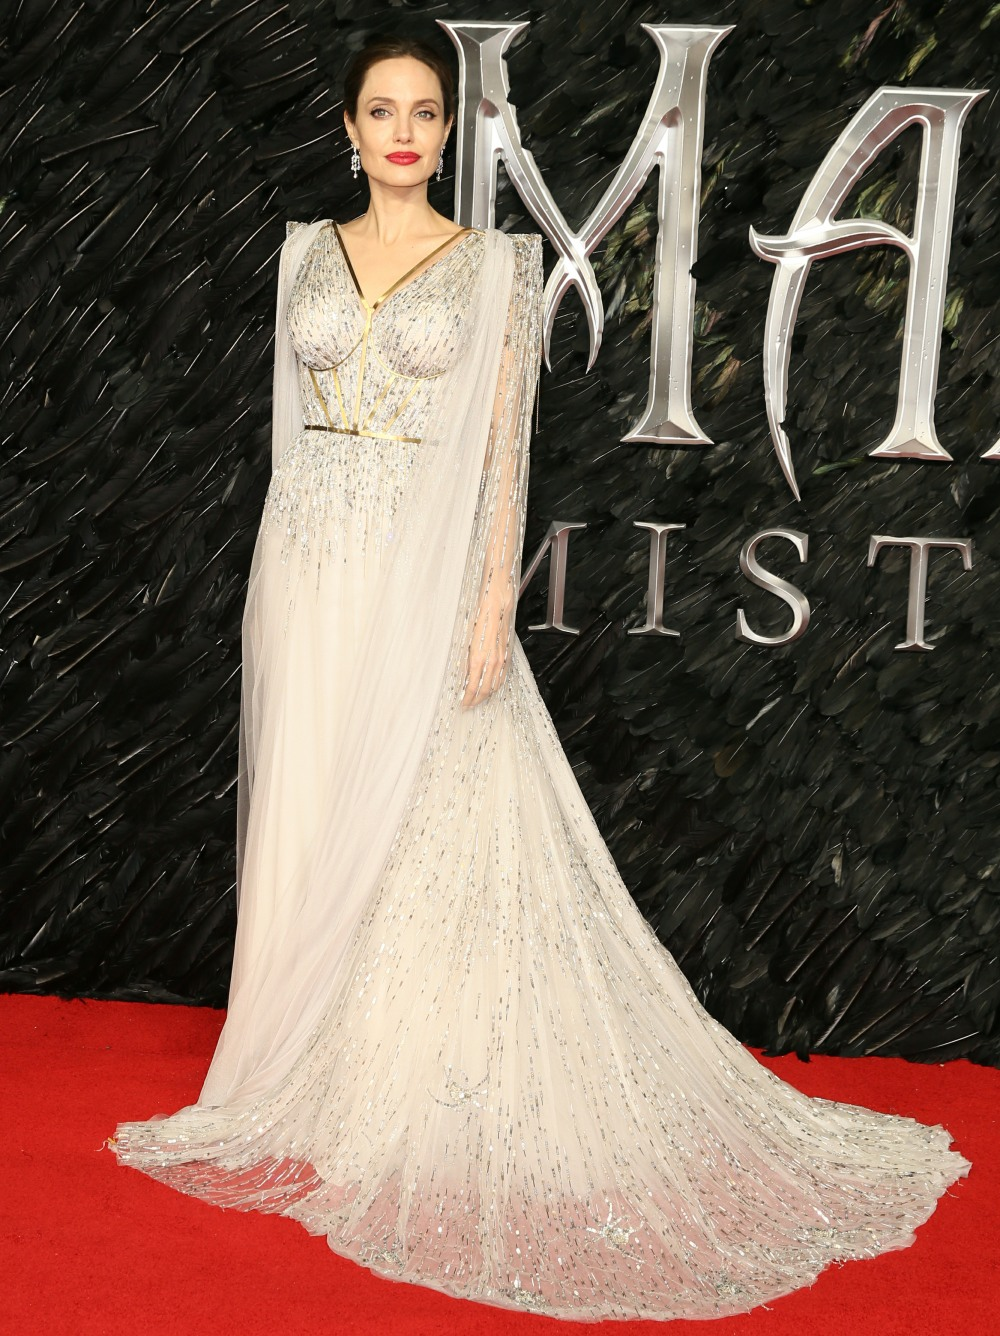 The European Premiere of 'Maleficent: Mistress Of Evil' held at the Odeon IMAX Waterloo - Arrivals